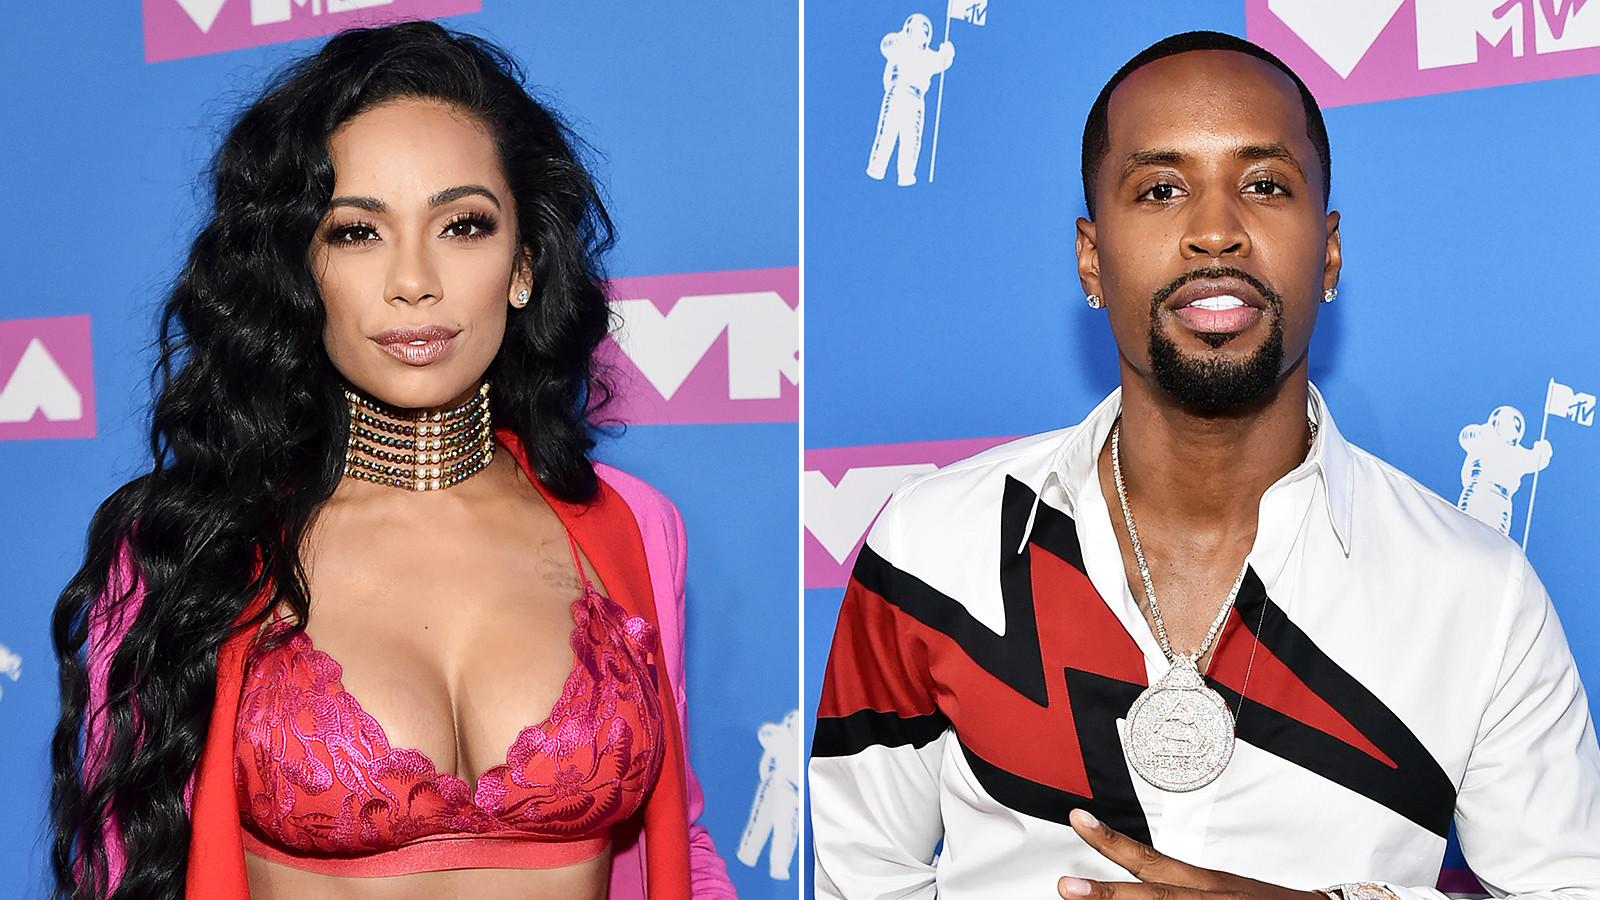 Erica Mena Shares The Most Emotional Video You'll See Today - Her And Safaree's First Dance To Celebrate Their Baby